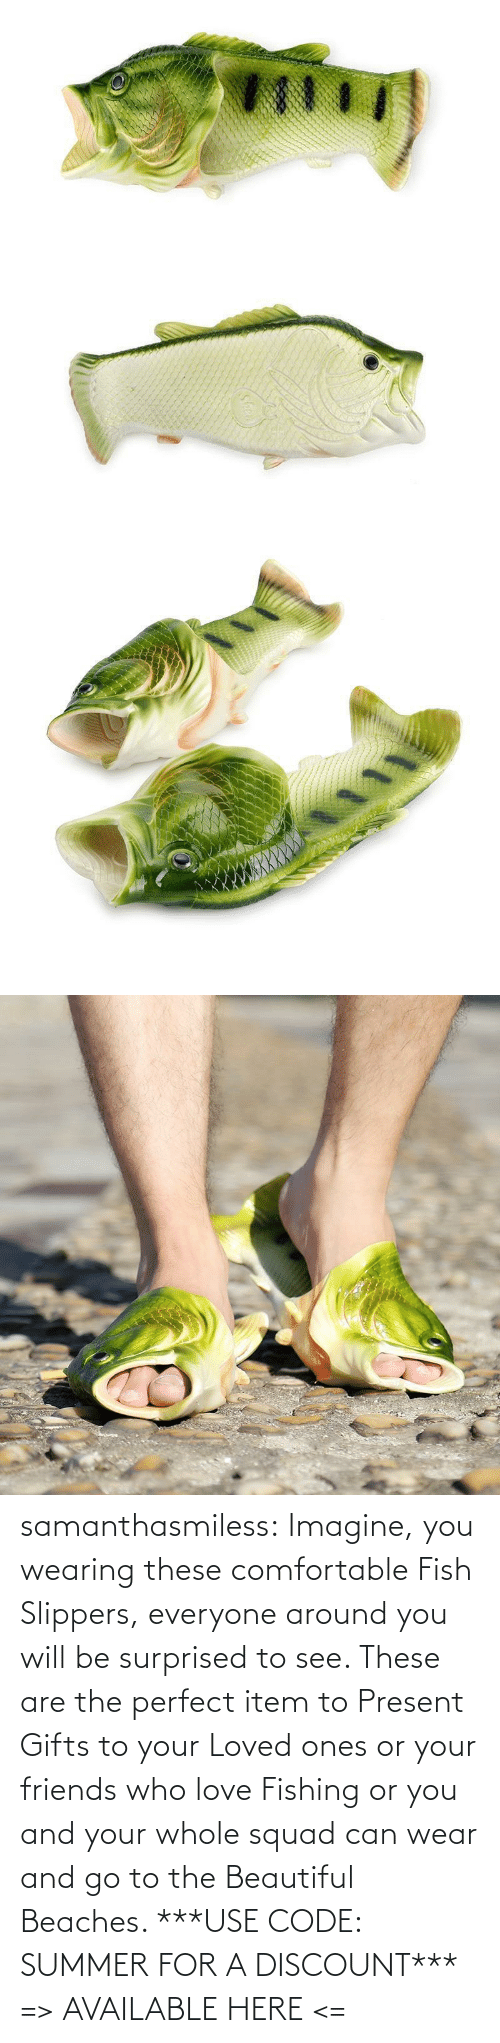 Wearing: samanthasmiless: Imagine, you wearing these comfortable Fish Slippers, everyone around you will be surprised to see. These are the perfect item to Present Gifts to your Loved ones or your friends who love Fishing or you and your whole squad can wear and go to the Beautiful Beaches.  ***USE CODE: SUMMER FOR A DISCOUNT*** => AVAILABLE HERE <=